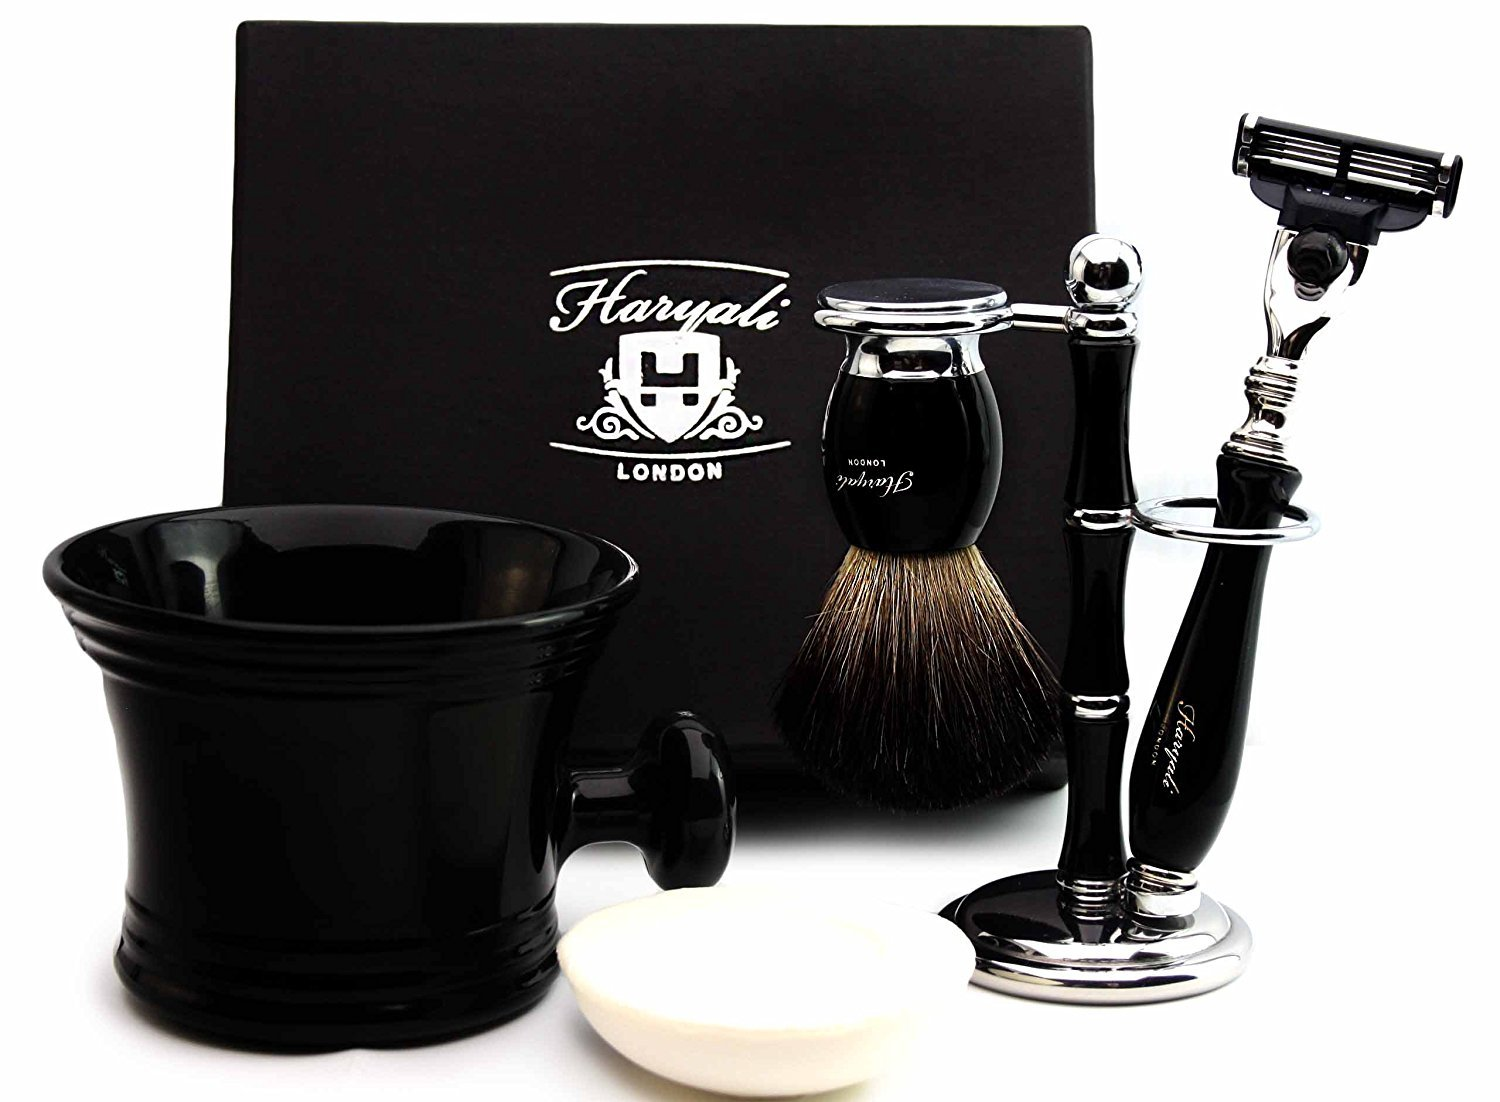 Pure Badger Hair Shaving Set In Black.The Set Contains Shaving Brush,4 Different Type of Razor To choose, Shaving Brush & Razor Holder,Shaving Mug with soap.Perfect For HIM (Gillette Mach 3 Razor)